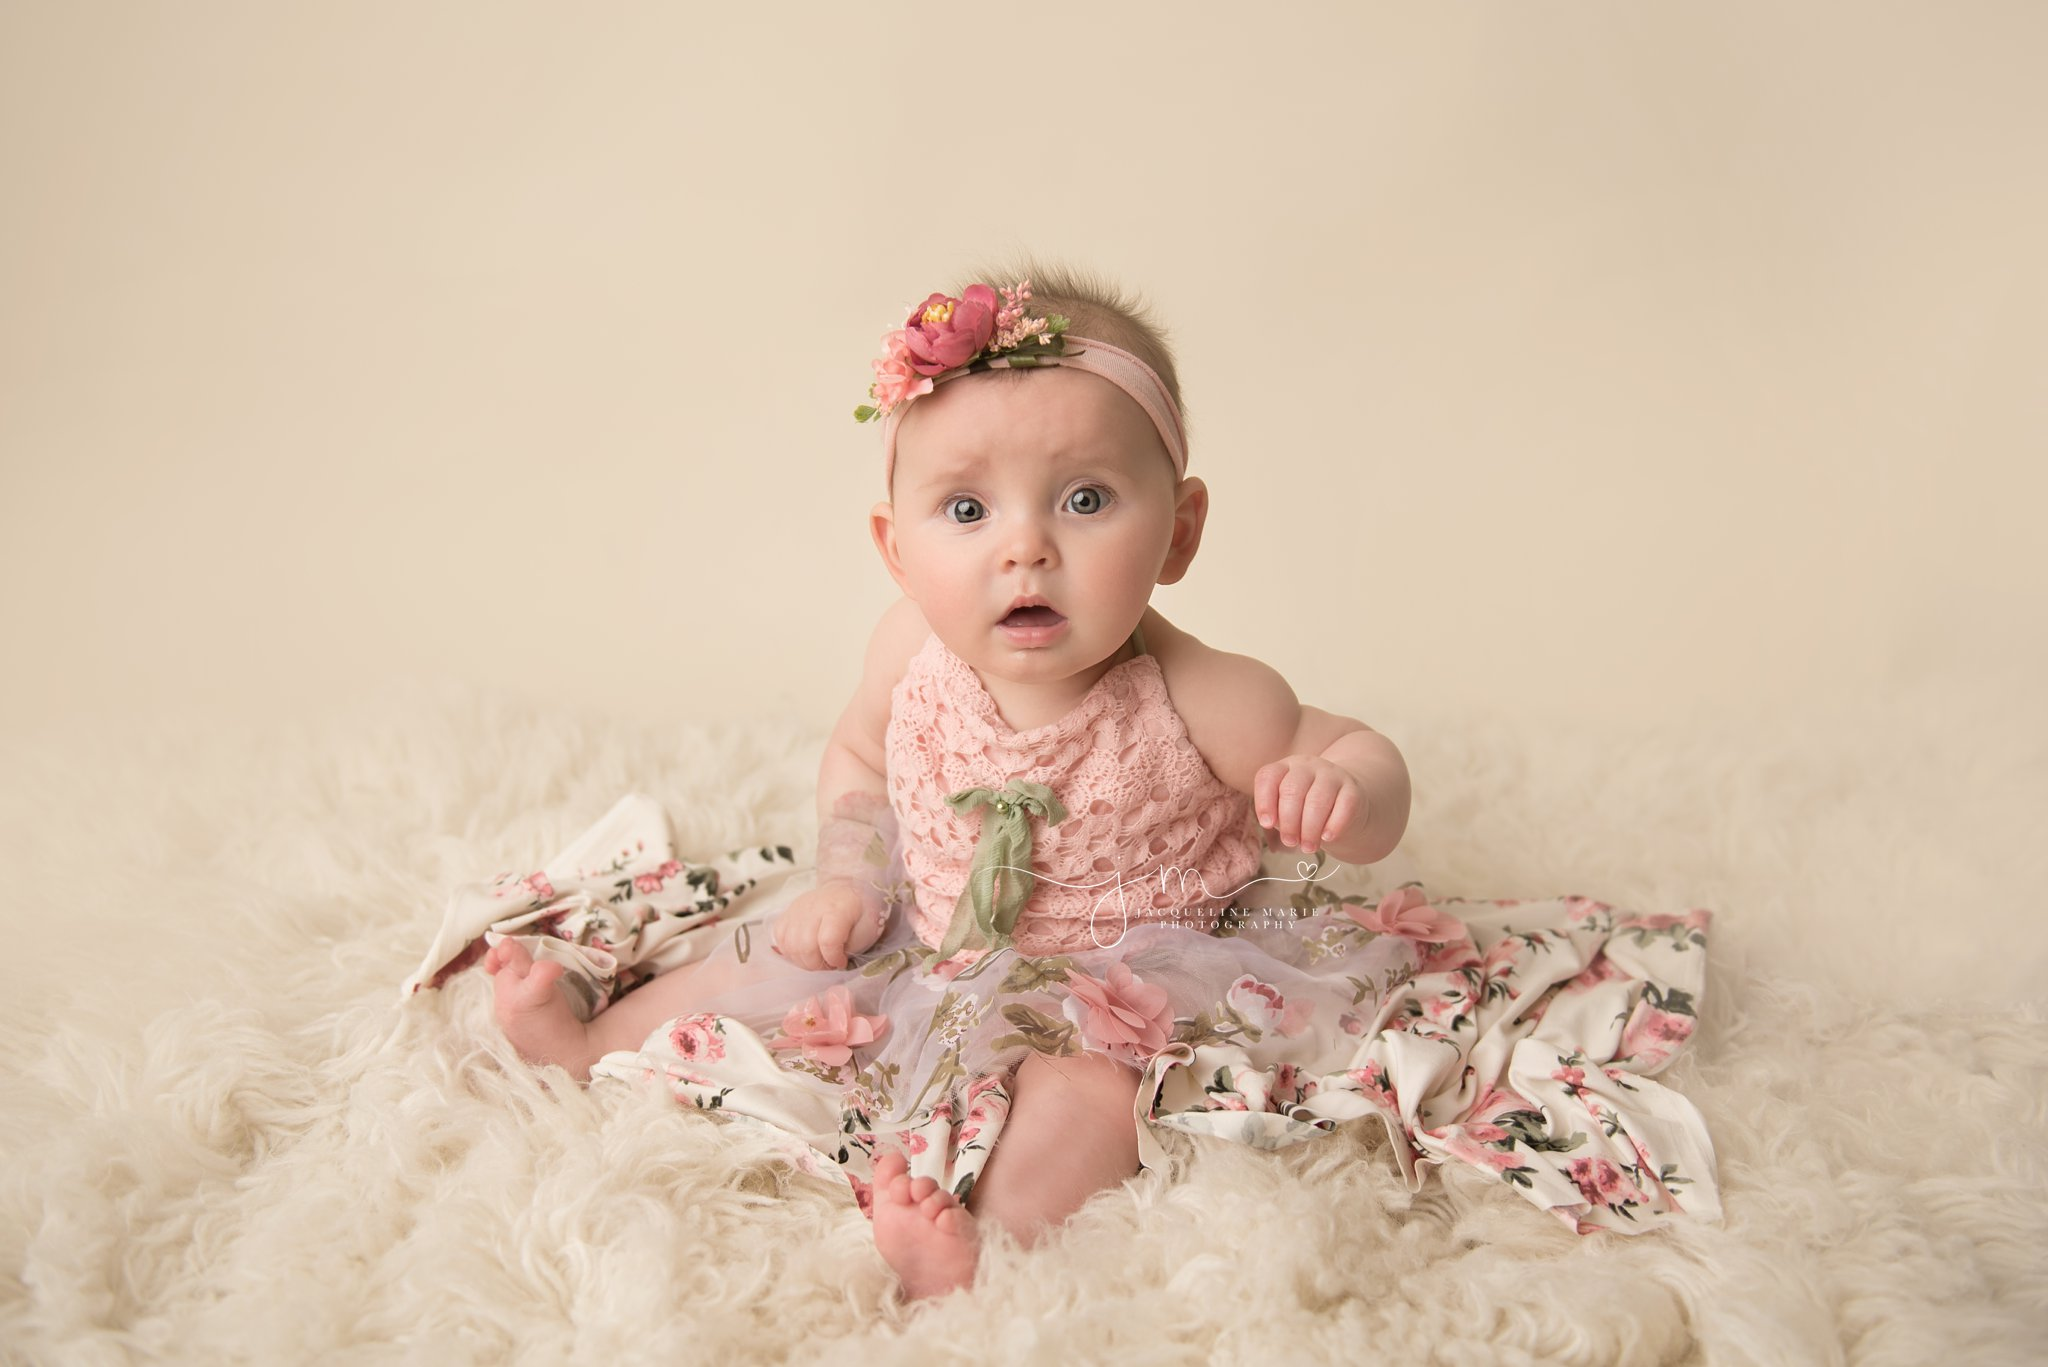 columbus ohio baby photographer features image of 6 month old baby girl in pink floral romper